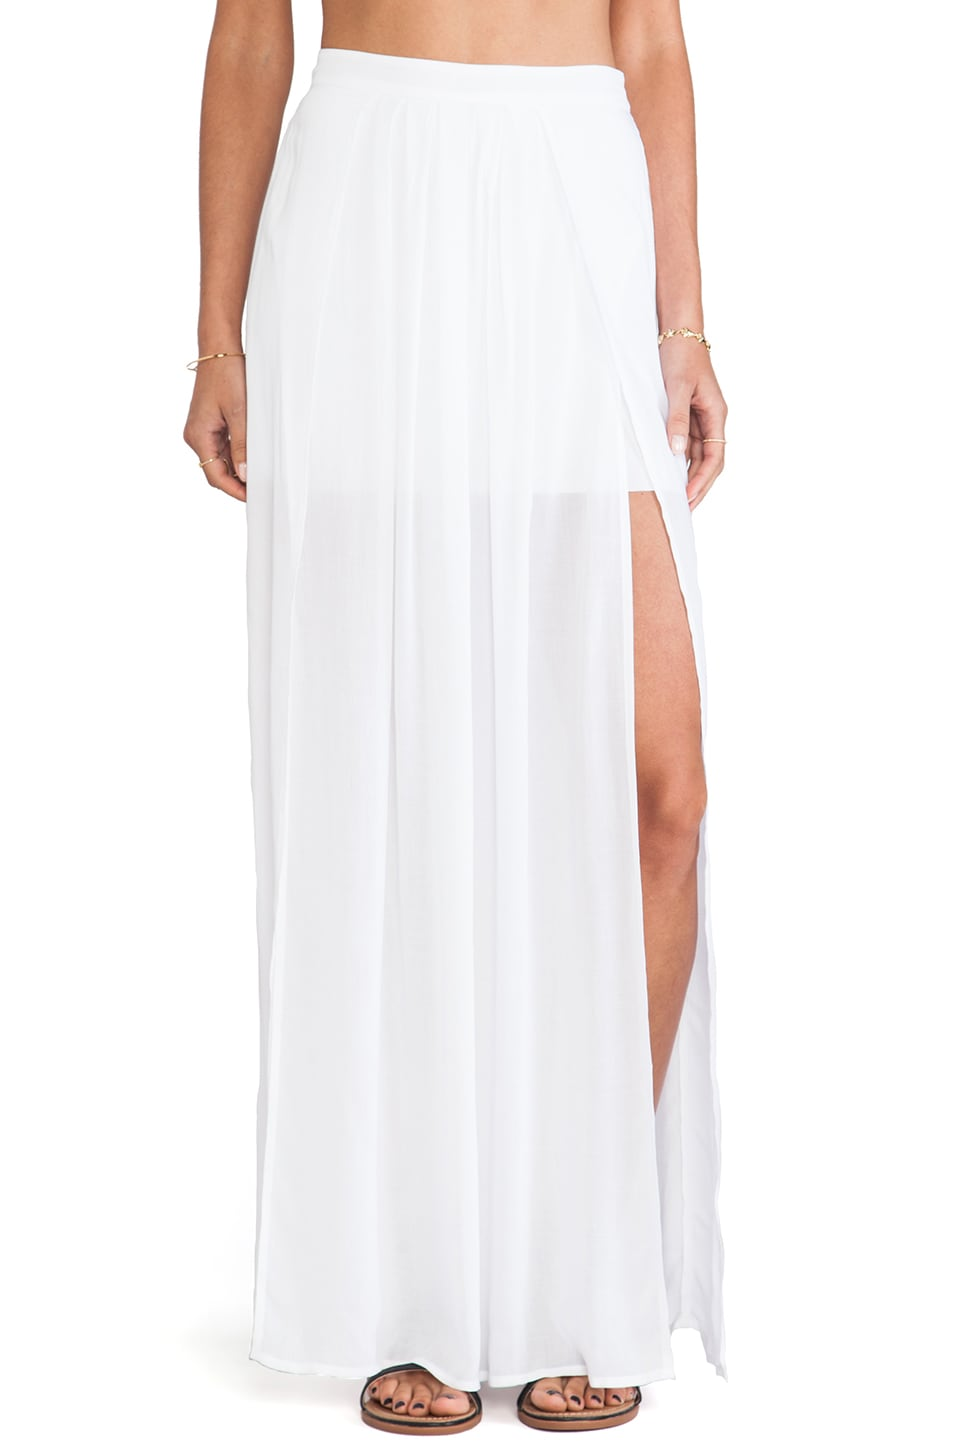 Bella Luxx Pleated Maxi Skirt in White